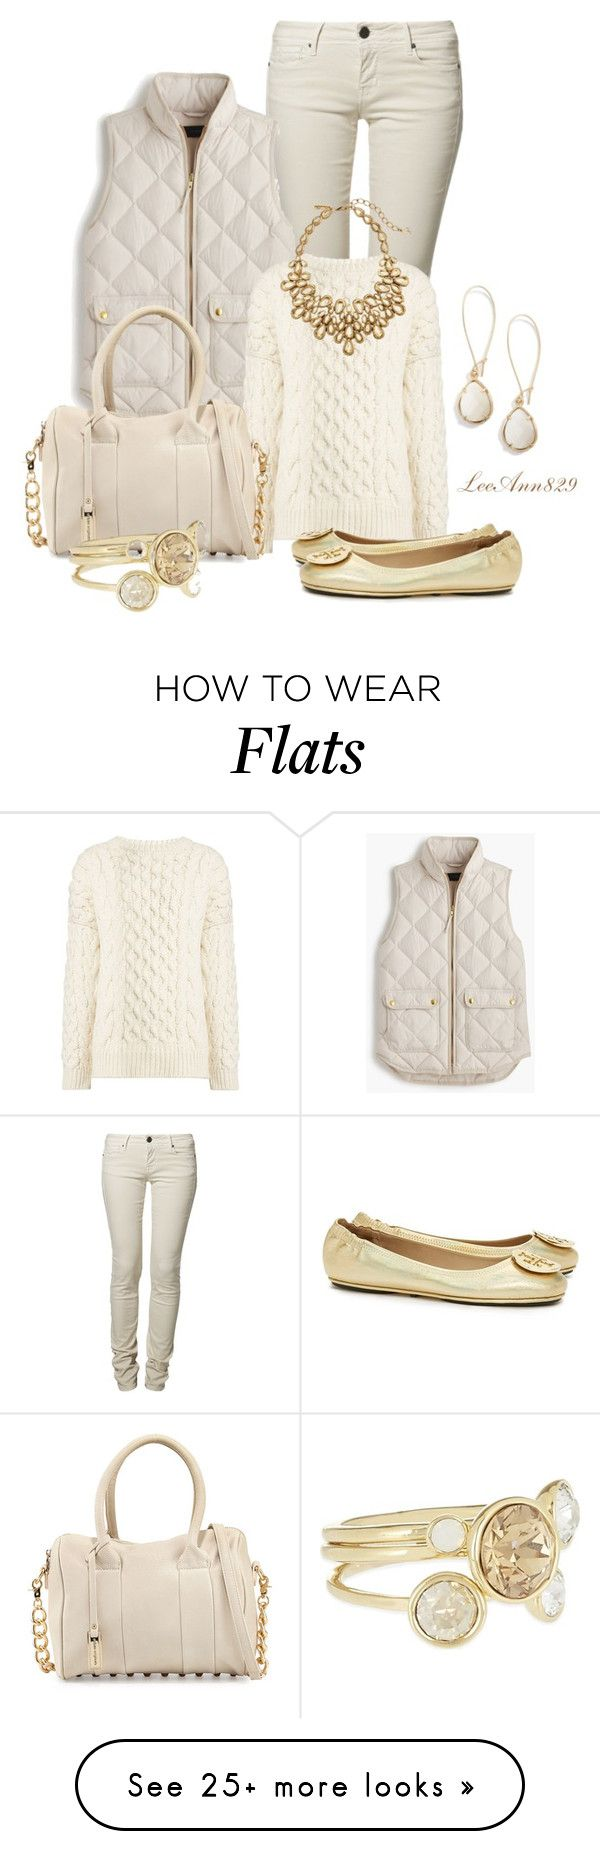 """Untitled #944"" by leeann829 on Polyvore featuring CIMARRON, Kendra Scott, J.Crew, Joseph, Urban Originals, Ted Baker, Tory Burch and Oscar de la Renta"